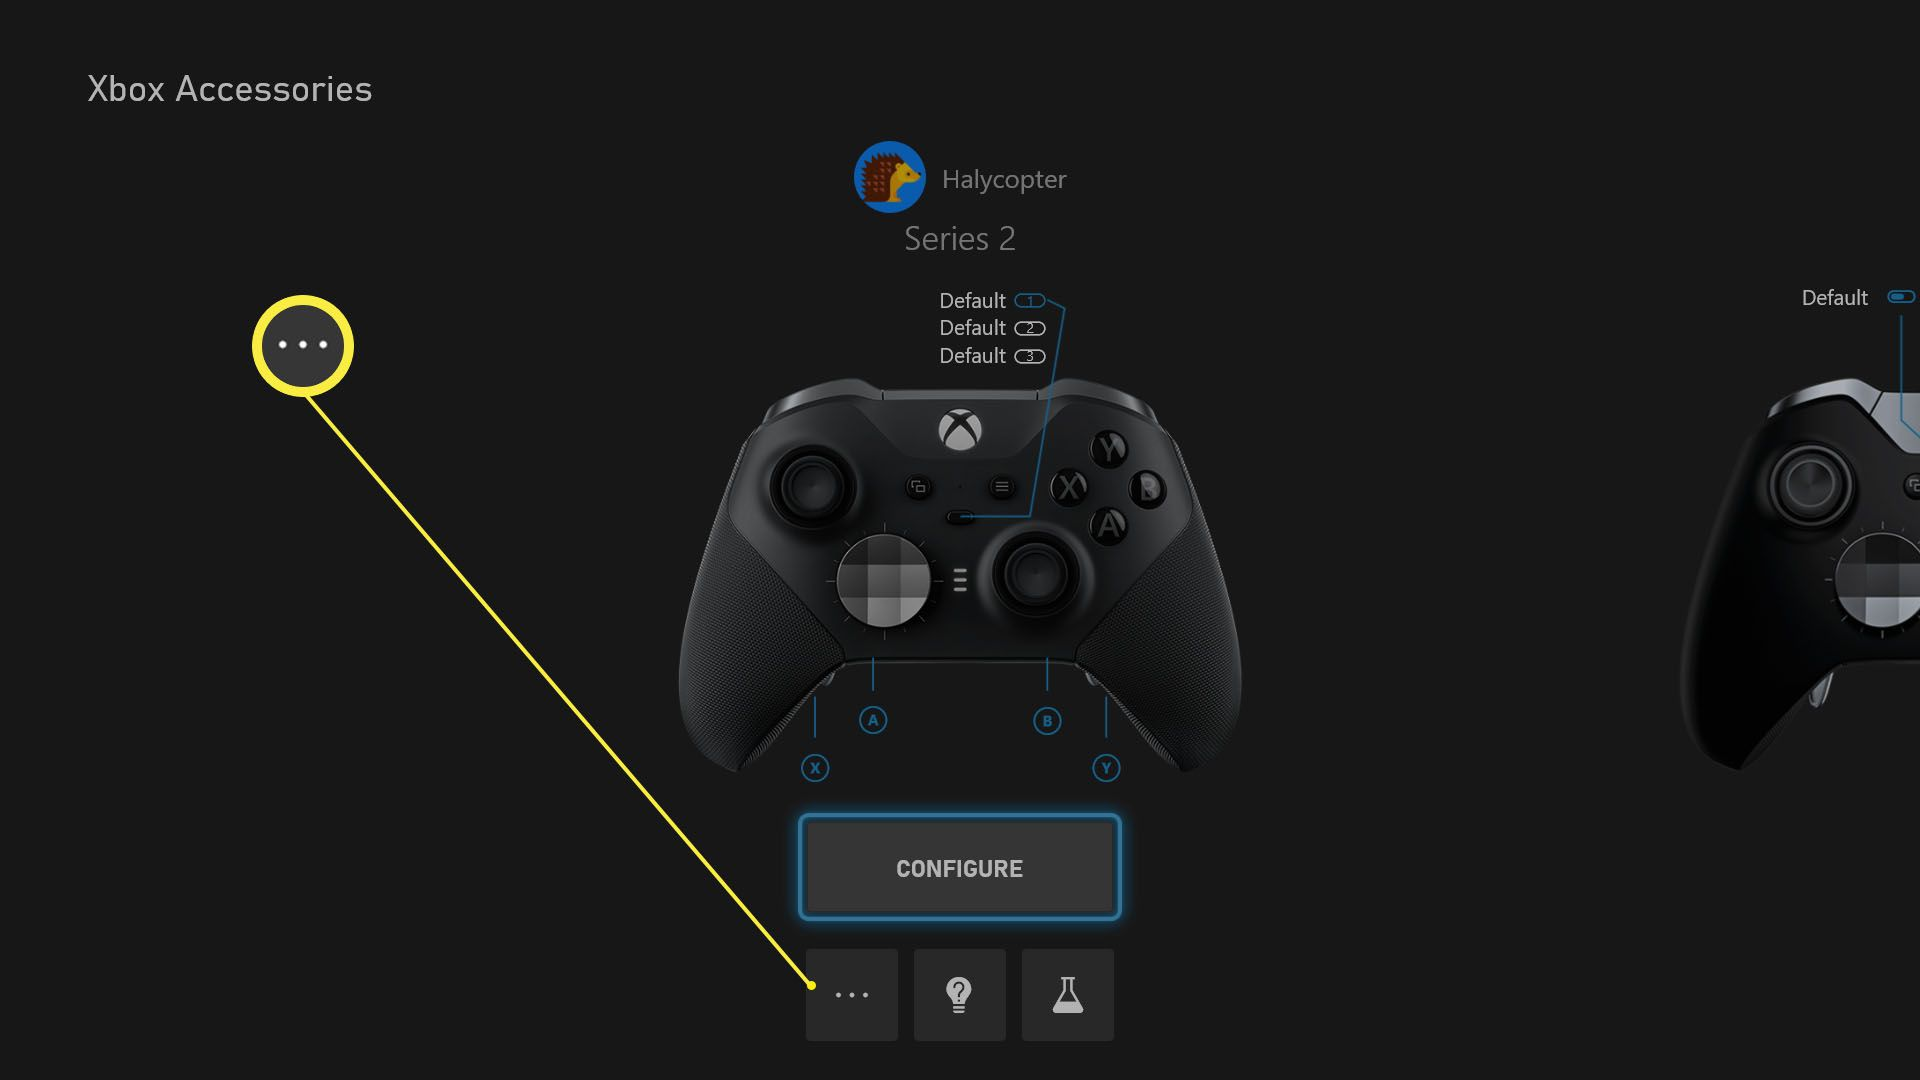 Xbox Accessories app with a controller setting highlighted